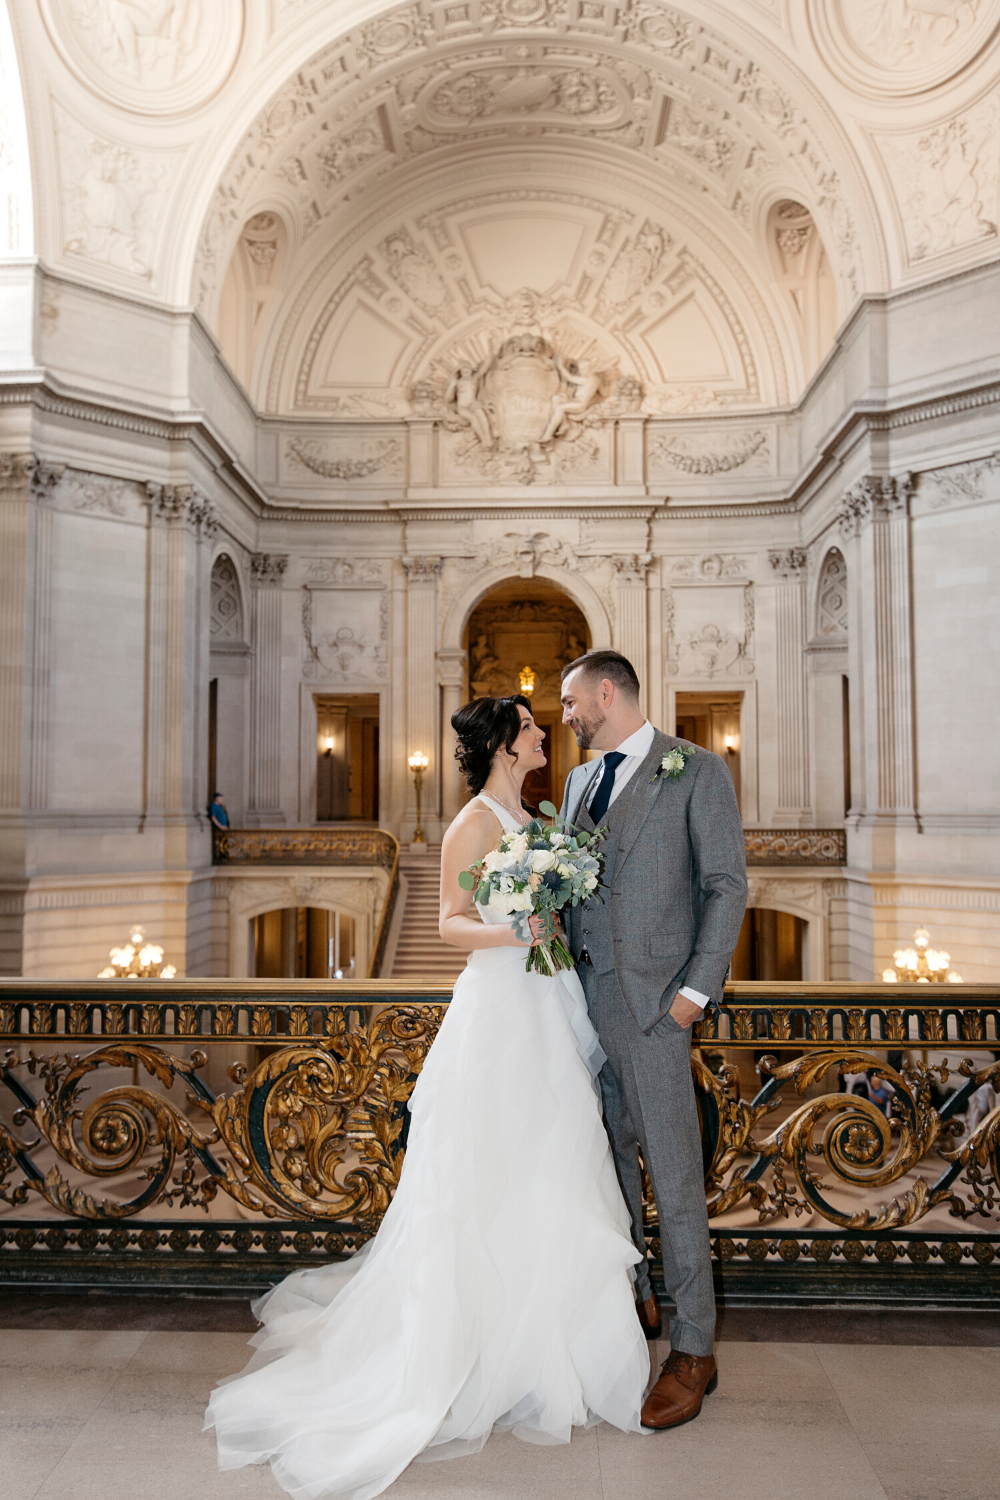 Sf City Hall Intimate Wedding Inspiration In 2020 San Francisco City Hall Wedding Wedding San Francisco San Francisco Wedding Photographer